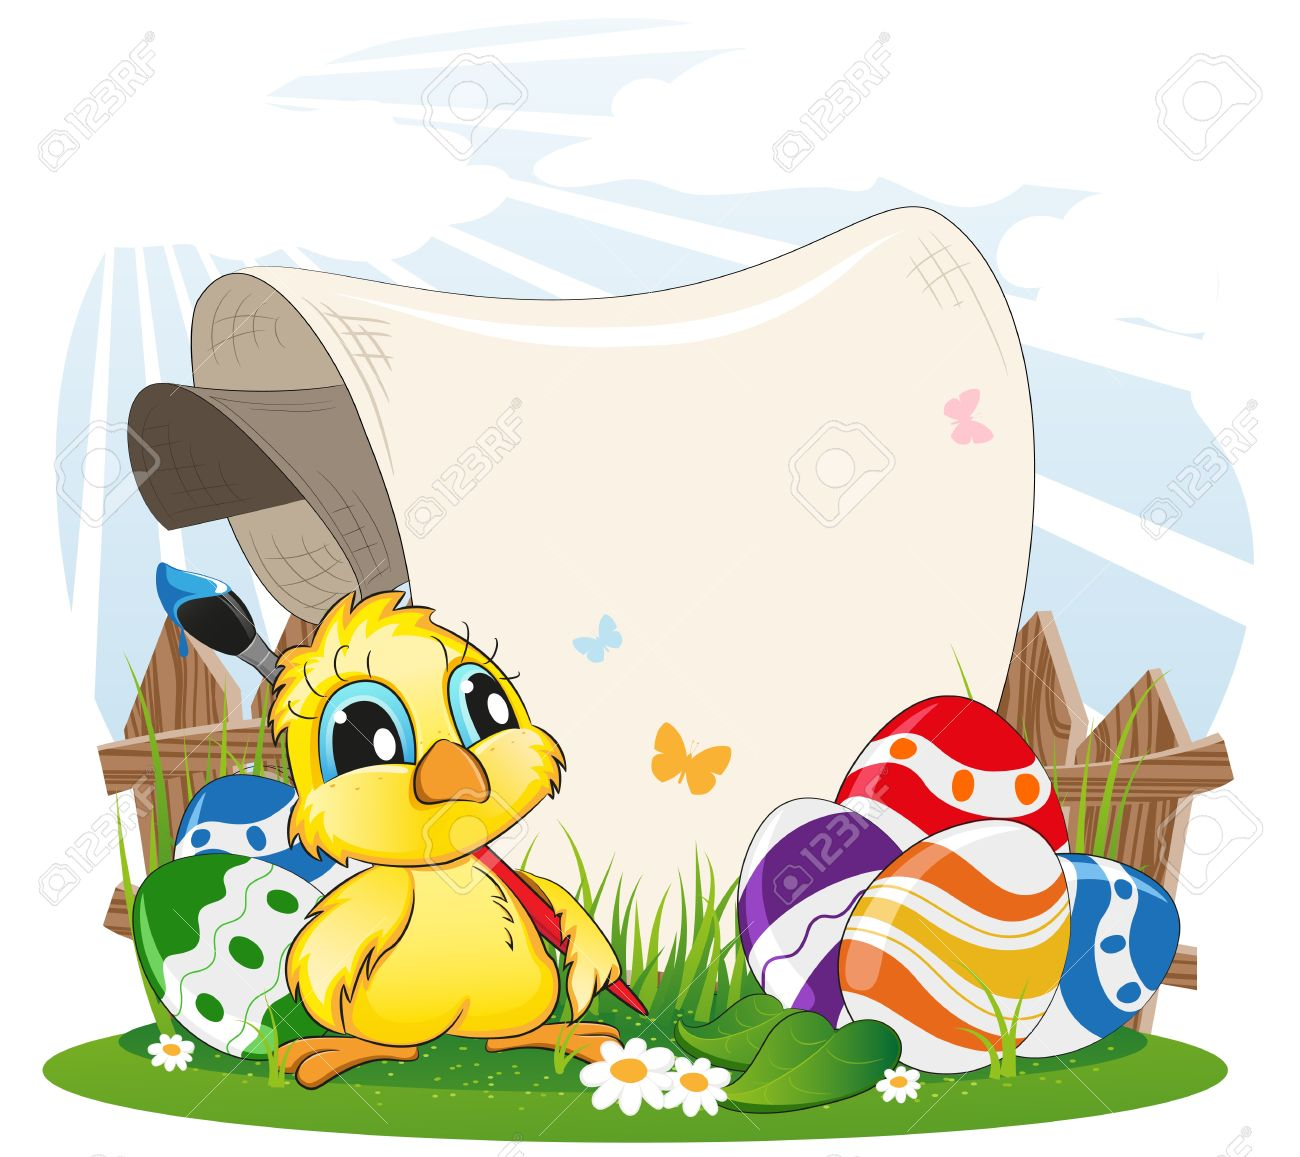 Cartoon chicken with paintbrush and Easter eggs on spring meadow Stock Vector - 18879992